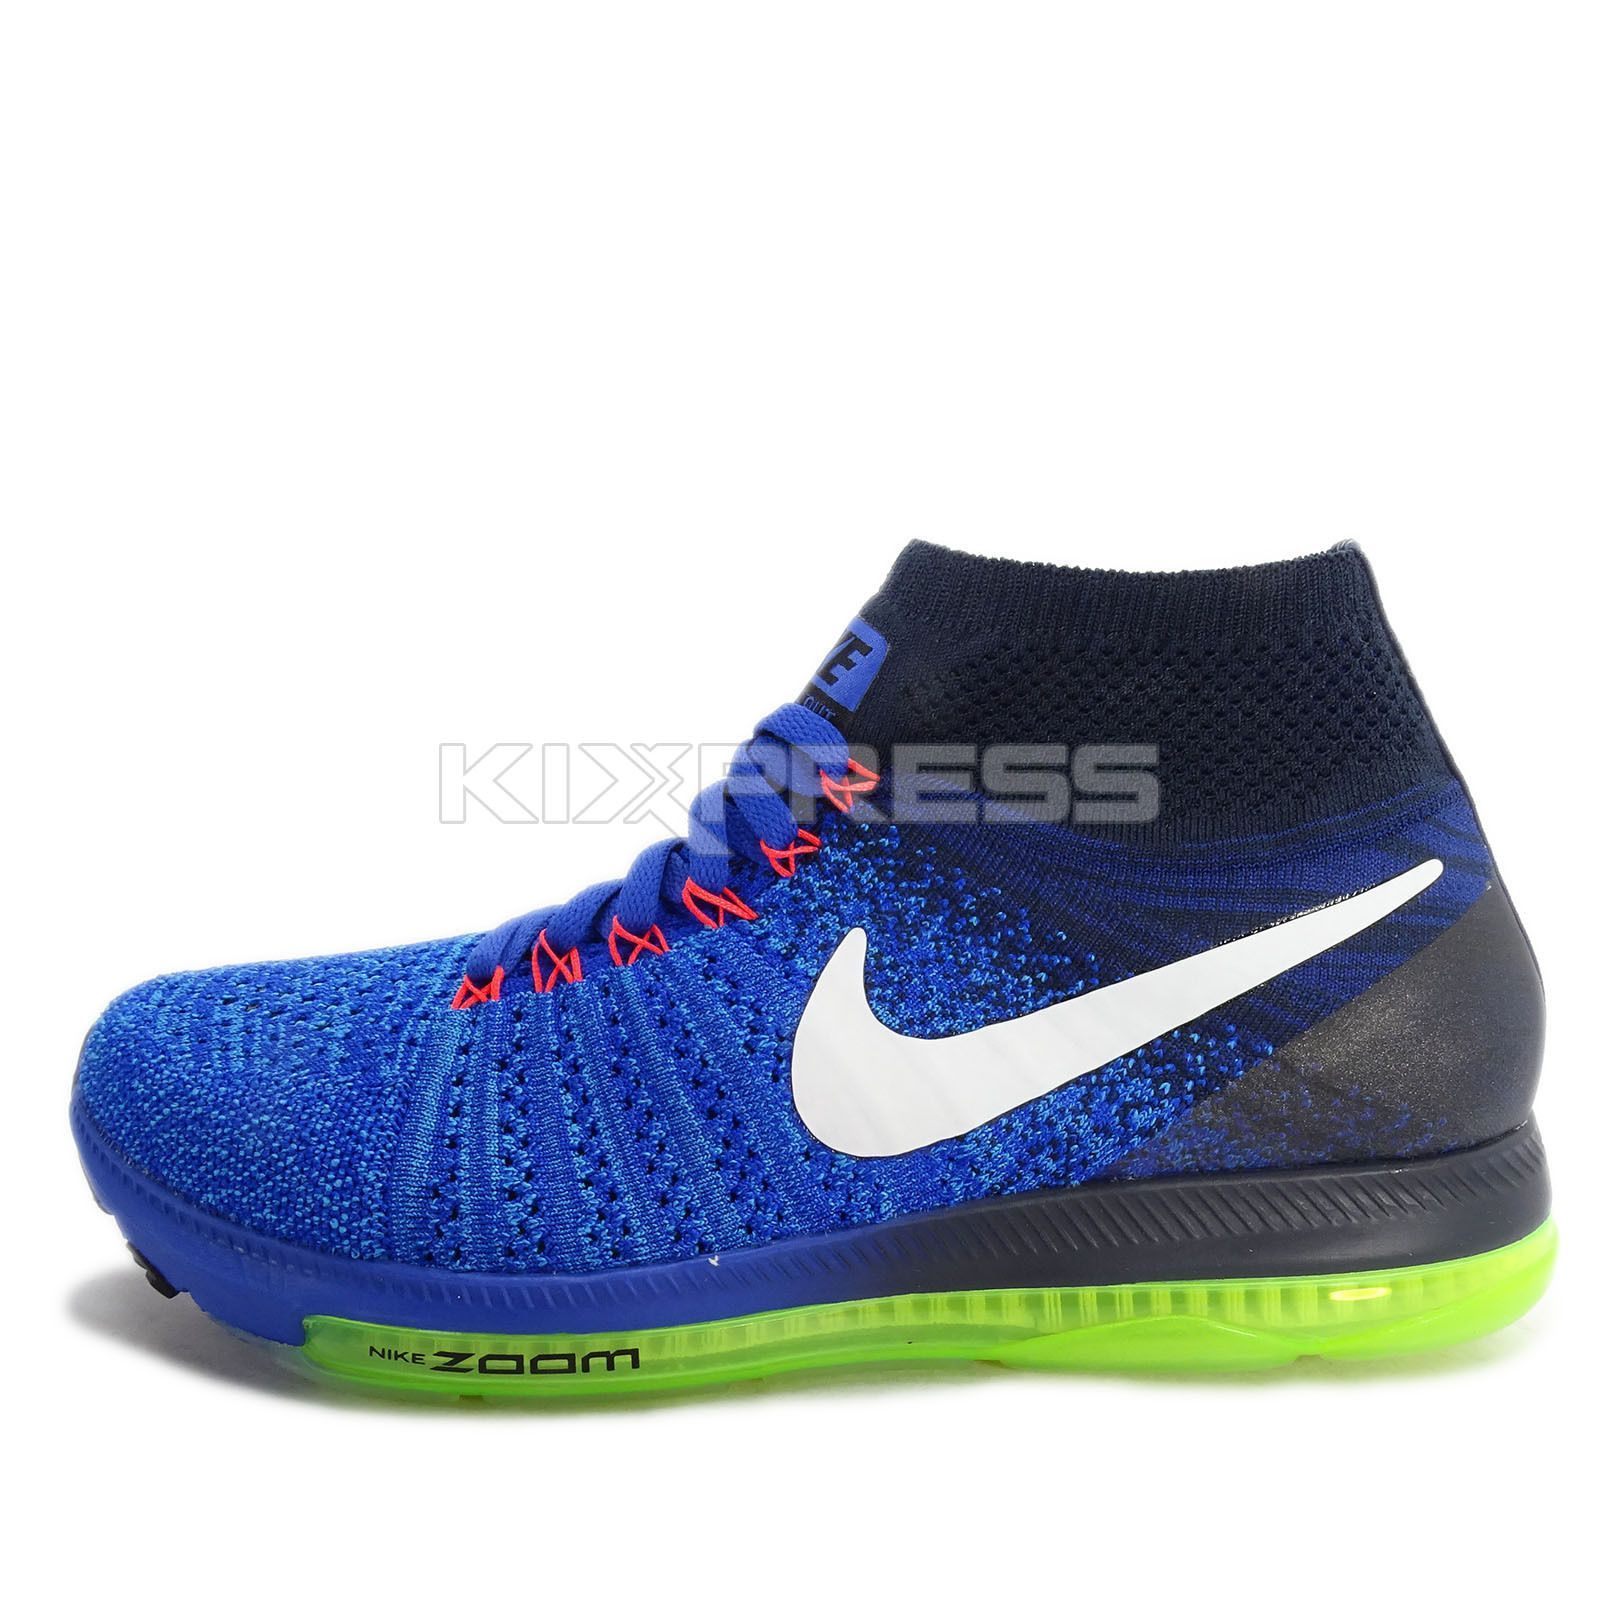 76e815635099b Wmns Nike Zoom All Out Flyknit Oc  845361-401  Running Blue White-Navy